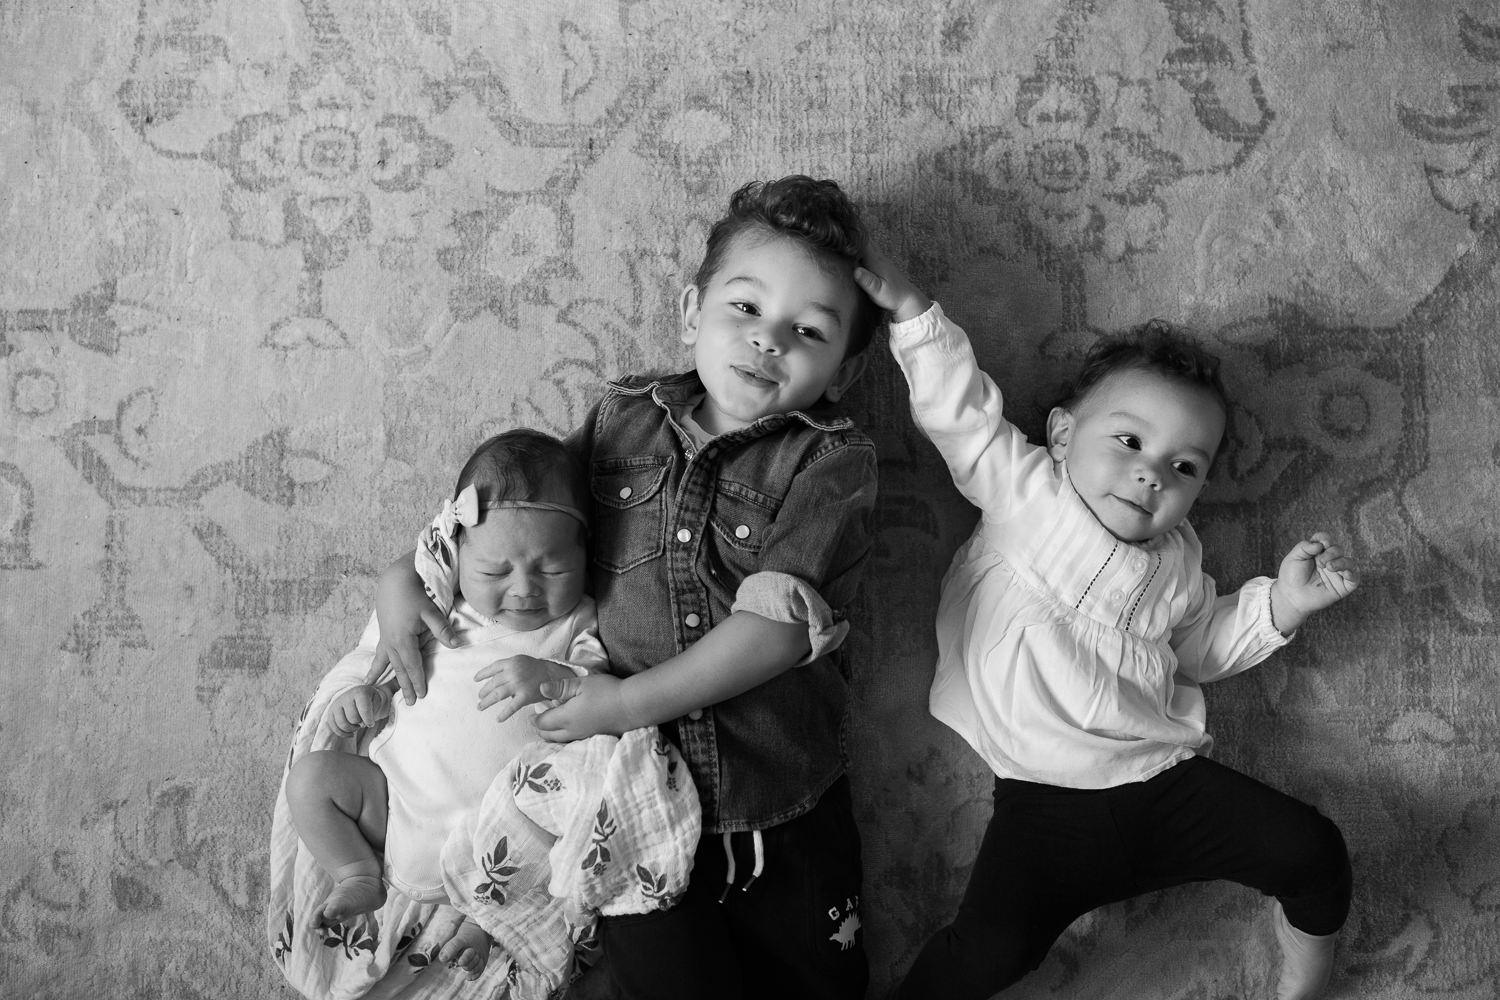 3 siblings lying on floor, 2 week old baby girl held by 2 year old big brother, 1 year old toddler sister next to boy, hand on his head - Markham In-Home Photos